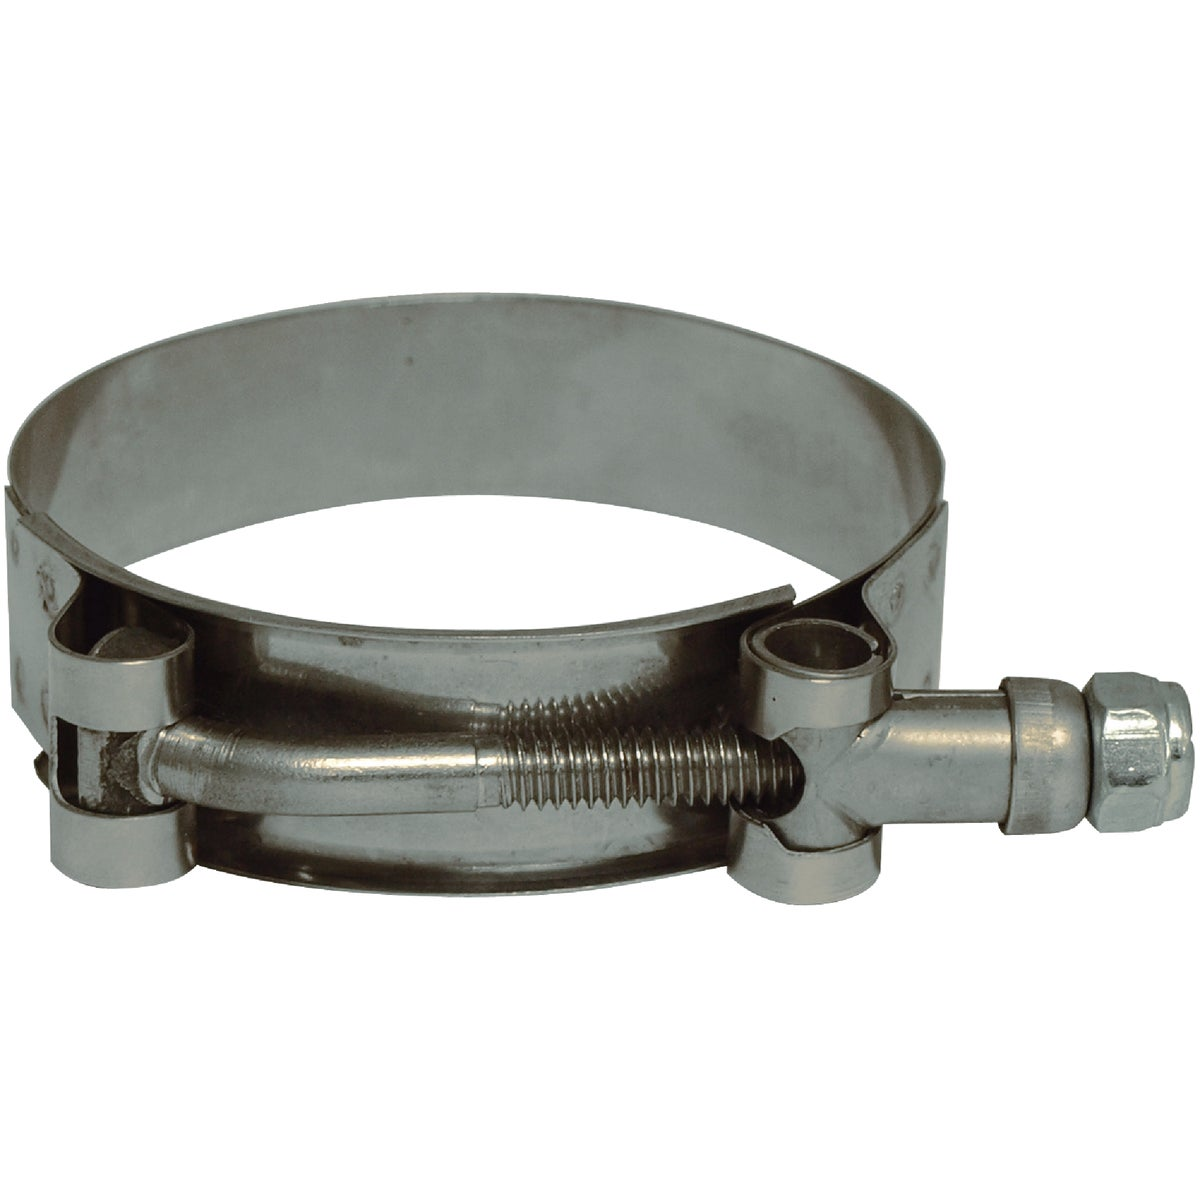 2-3/16-2-1/2 TBOLT CLAMP - 43082008 by Apache Hose Belting